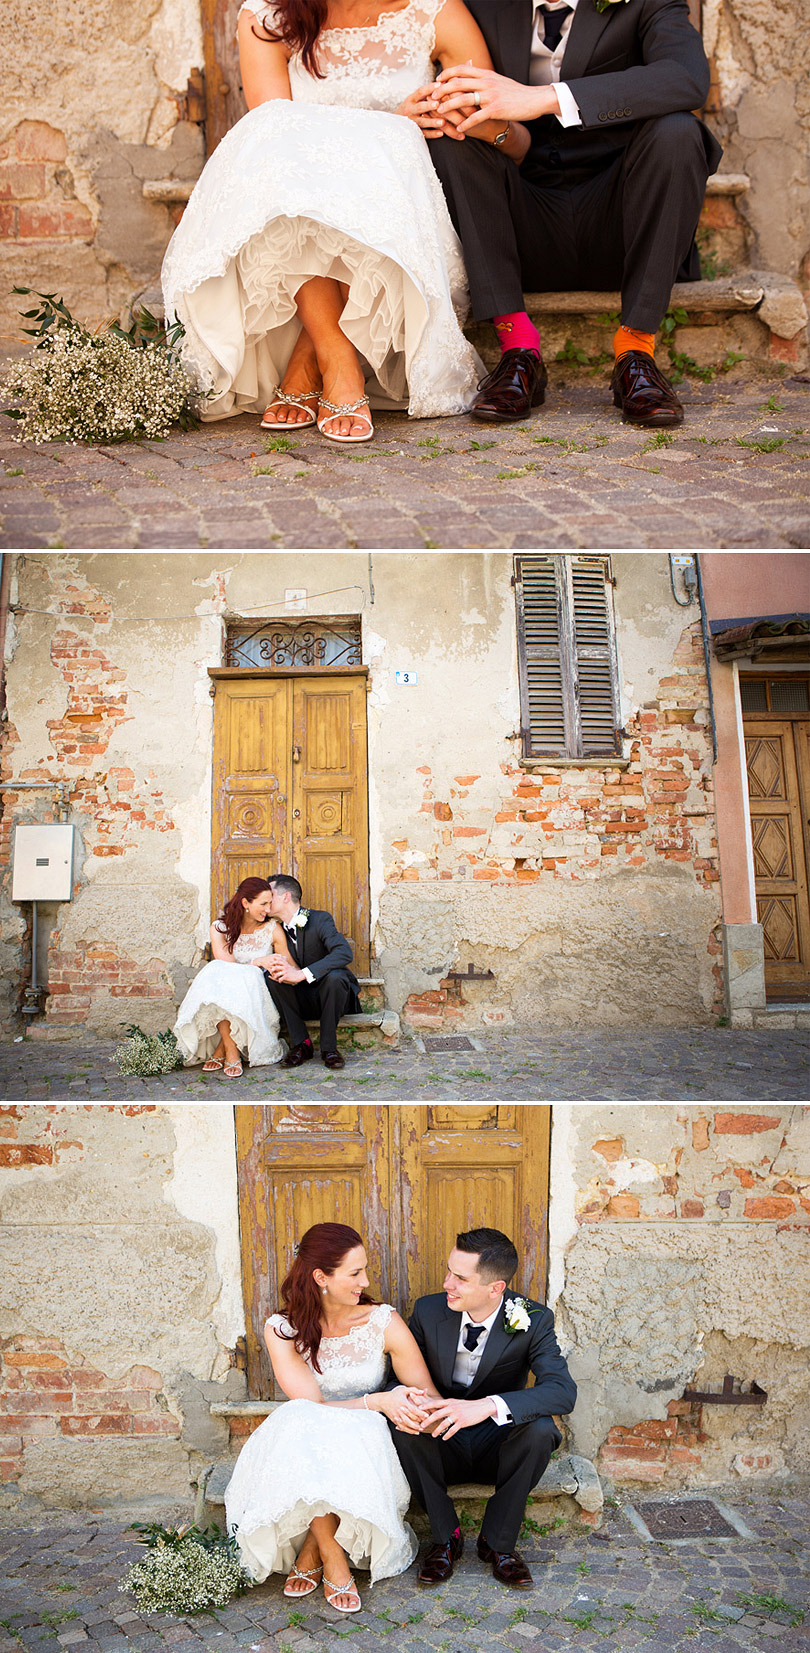 Castello-di-Cortanze-Italian-Wedding-LilyandFrankPhotography_18.jpg